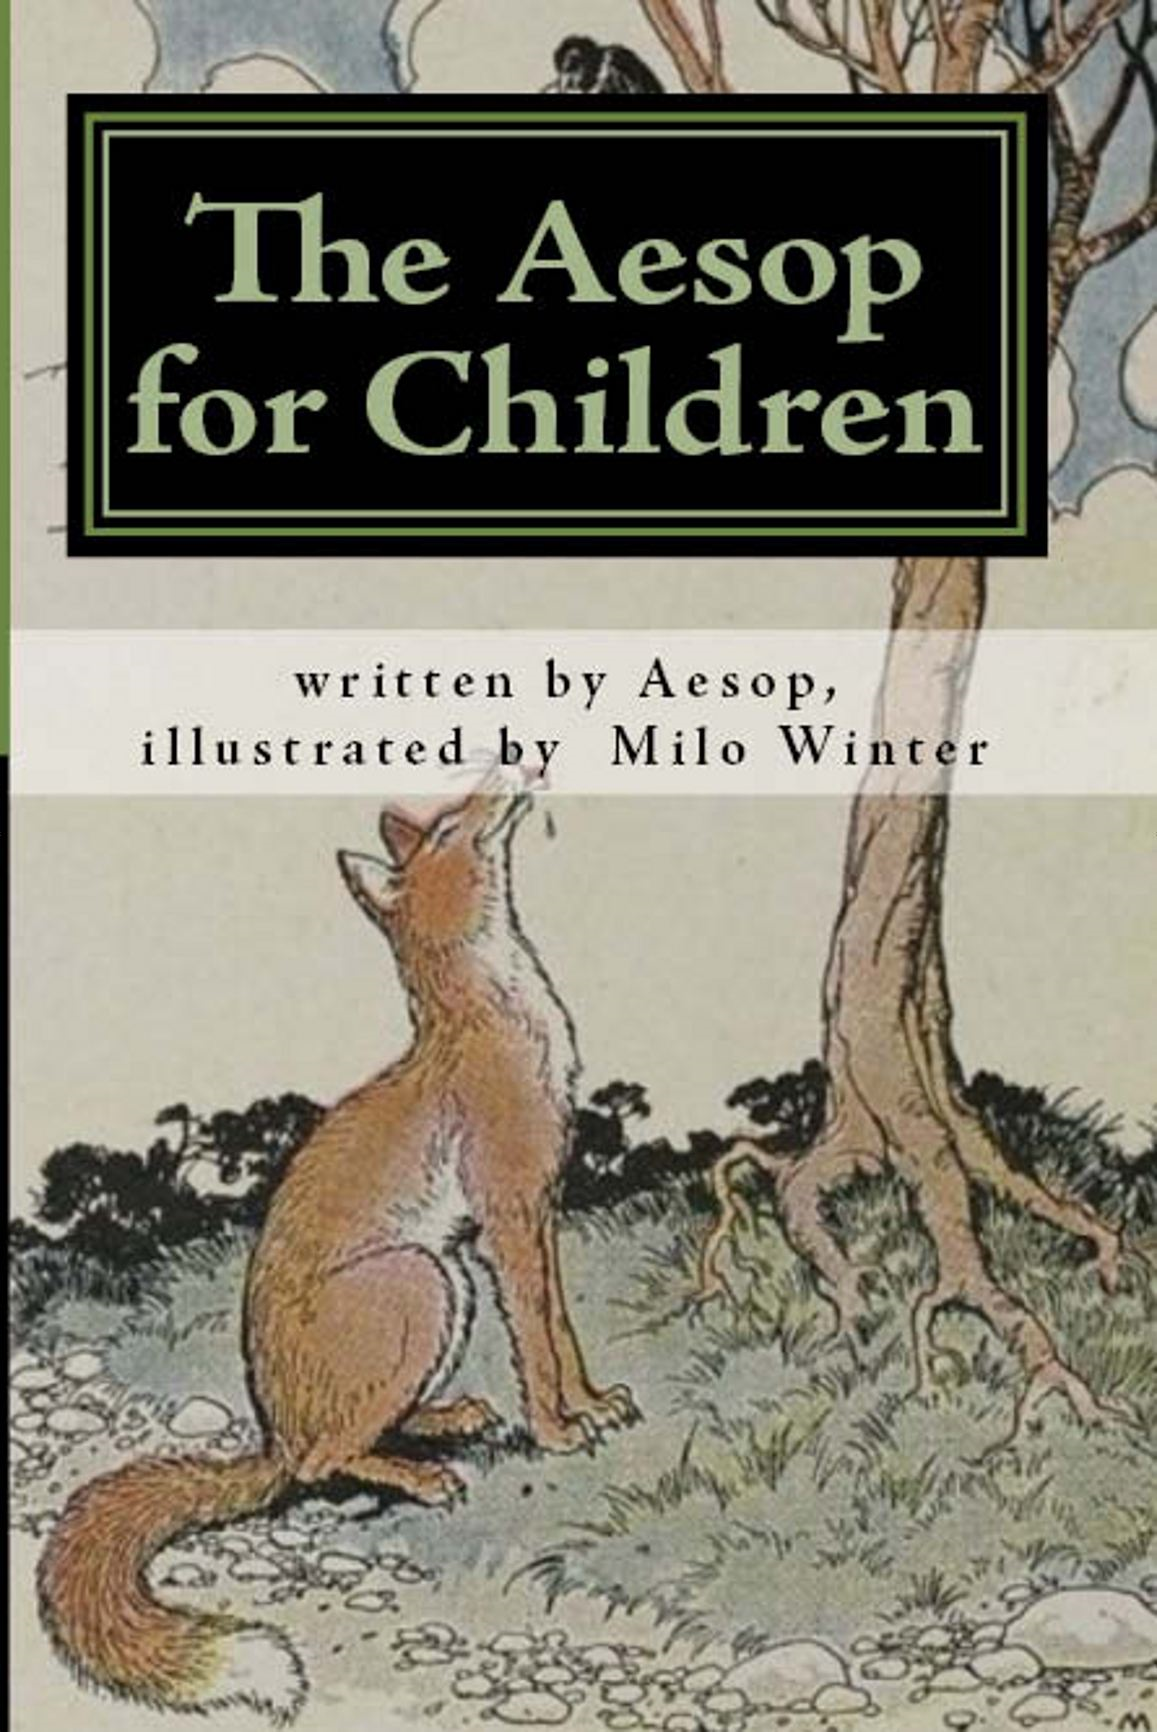 The ÆSOP for Children